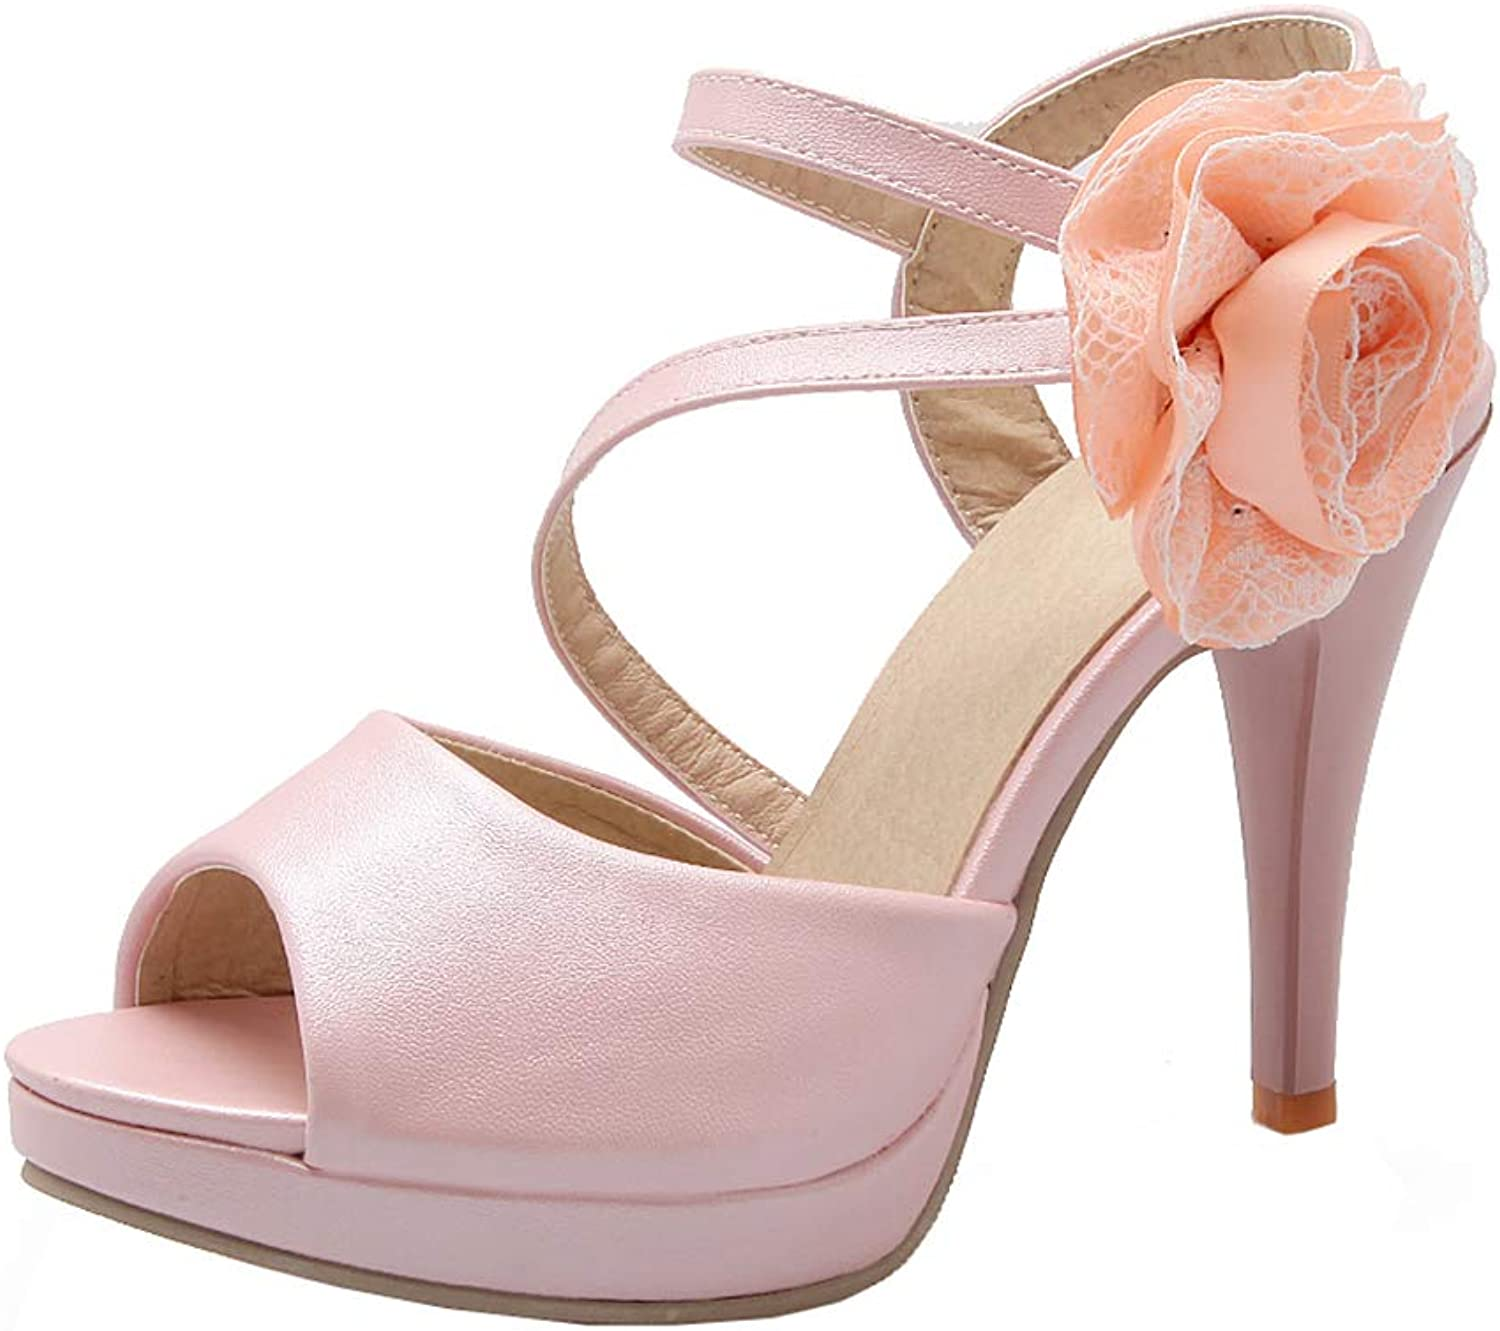 XDLEX Women's Lolita Flower Heeled Sandals Credver Strap Platform Pumps Ankle Wrap-Around Strap Floral Lacework Mary Janes Cut Out Peep Toe Chunky Heel